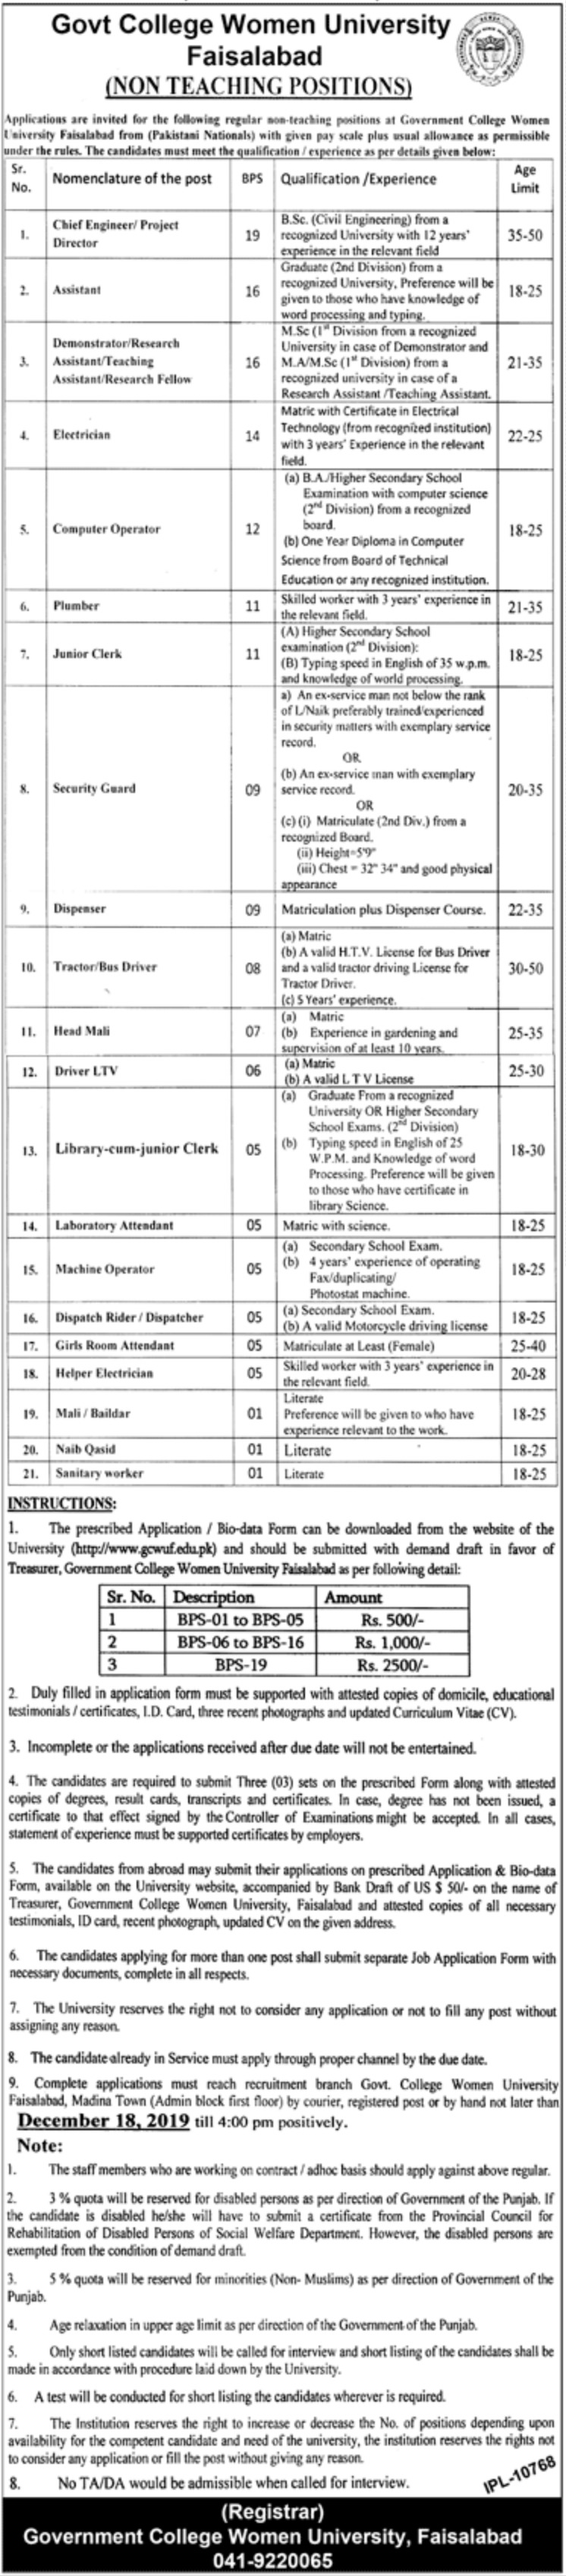 Govt College Women University Faisalabad Jobs 2019